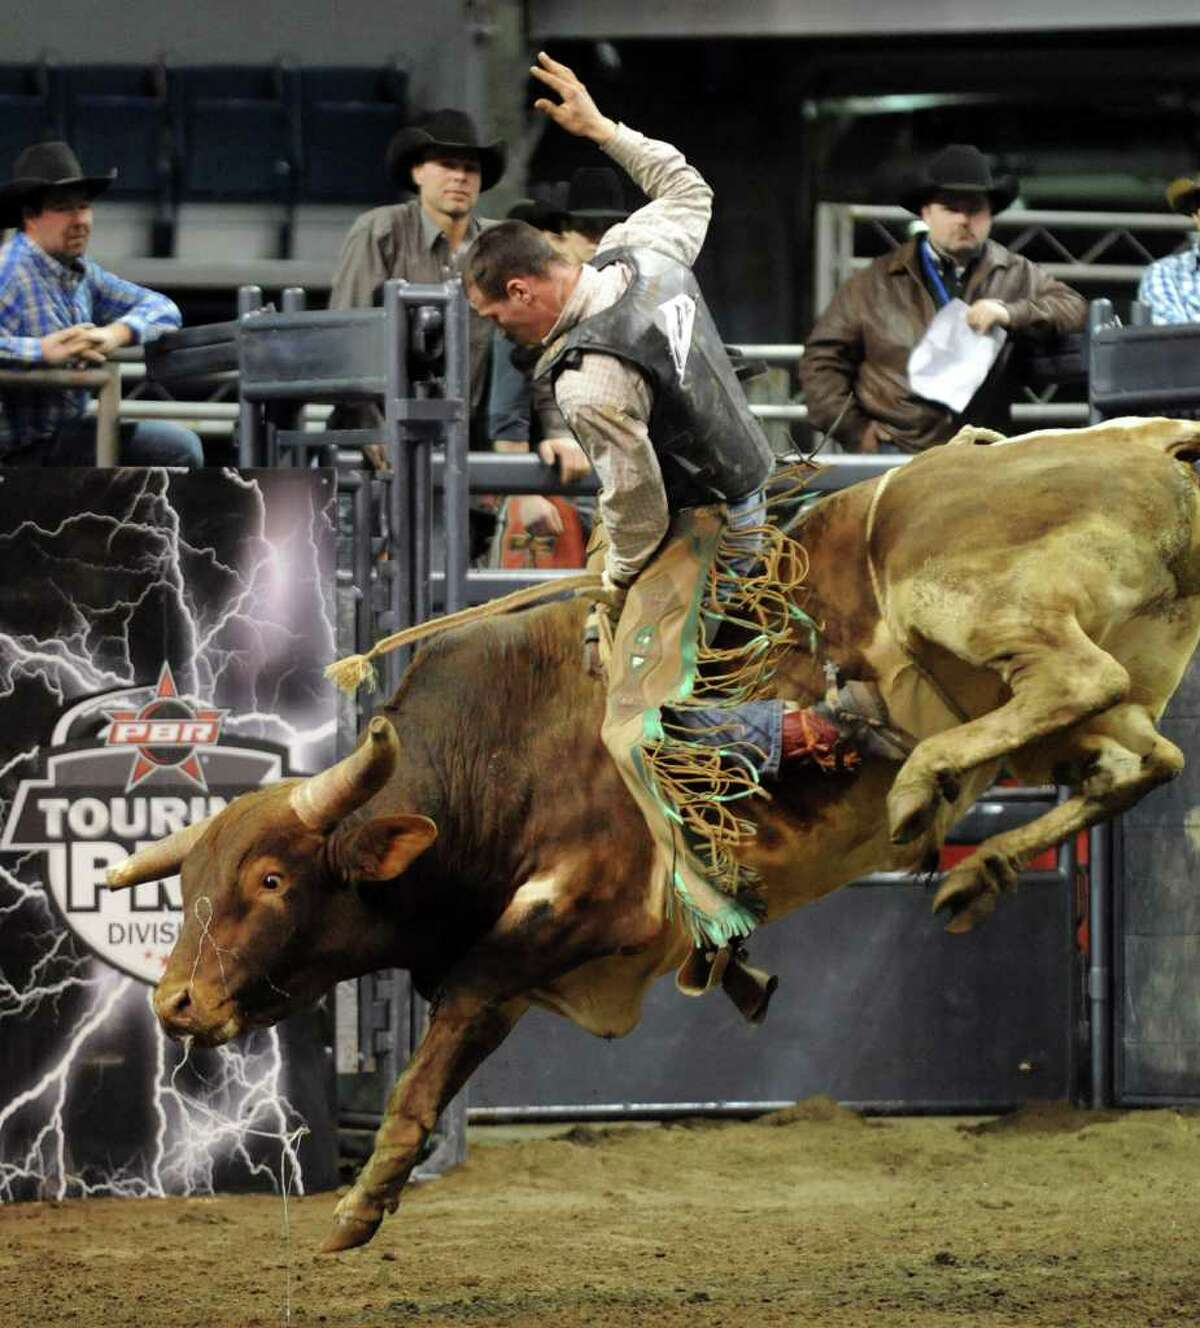 The Professional Bull Riders Touring Pro Division came to Webster Bank Arena at Harbor Yard in Bridgeport, Conn. for the Town Fair Tire Invitational on Friday January 21, 2011. Andrew Forcier, from Orange, rides True Gritt during the invitational.